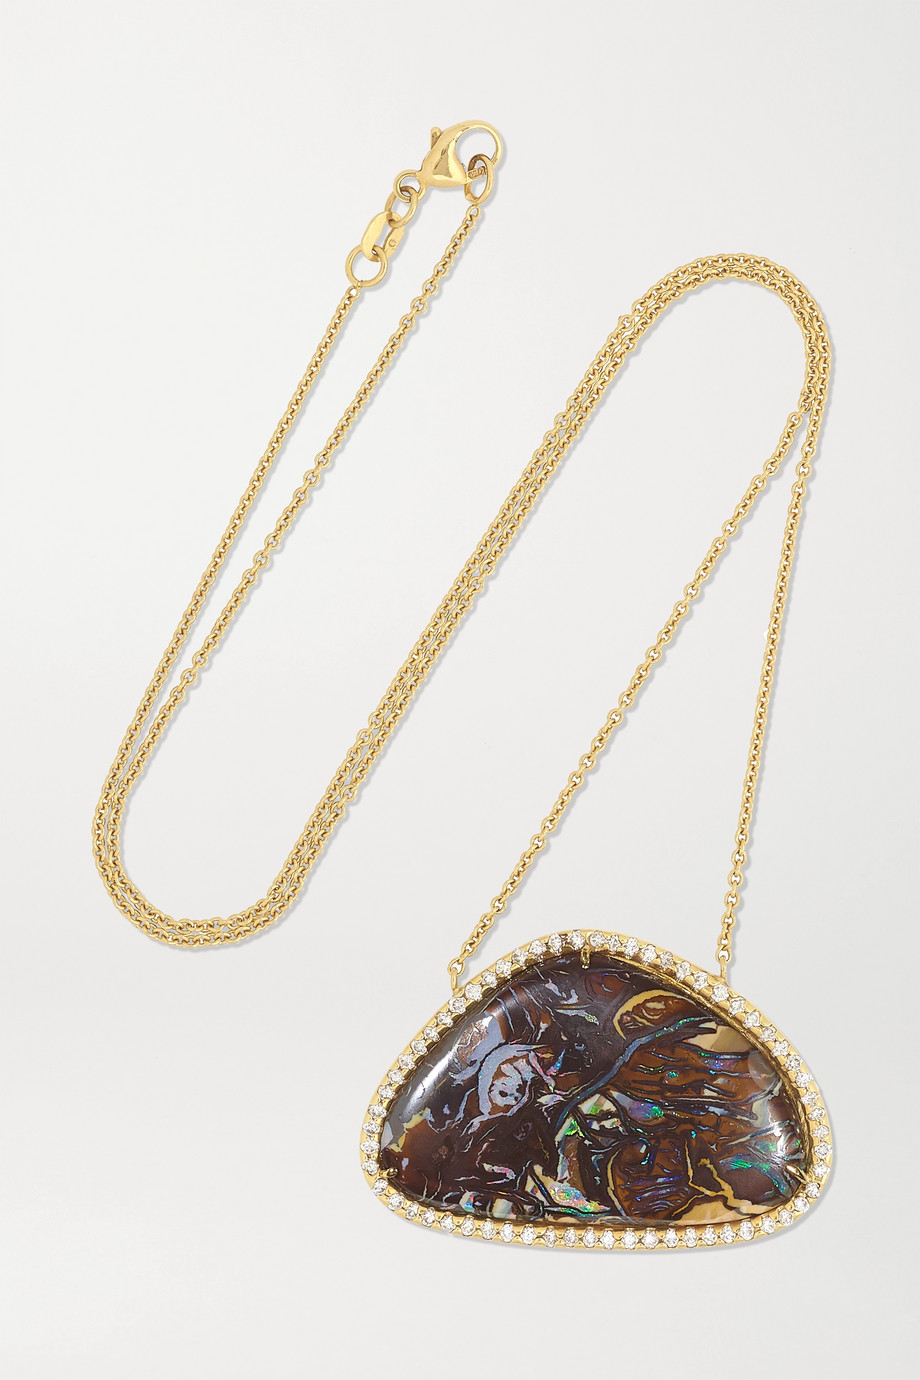 Kimberly McDonald 18-karat gold, opal and diamond necklace